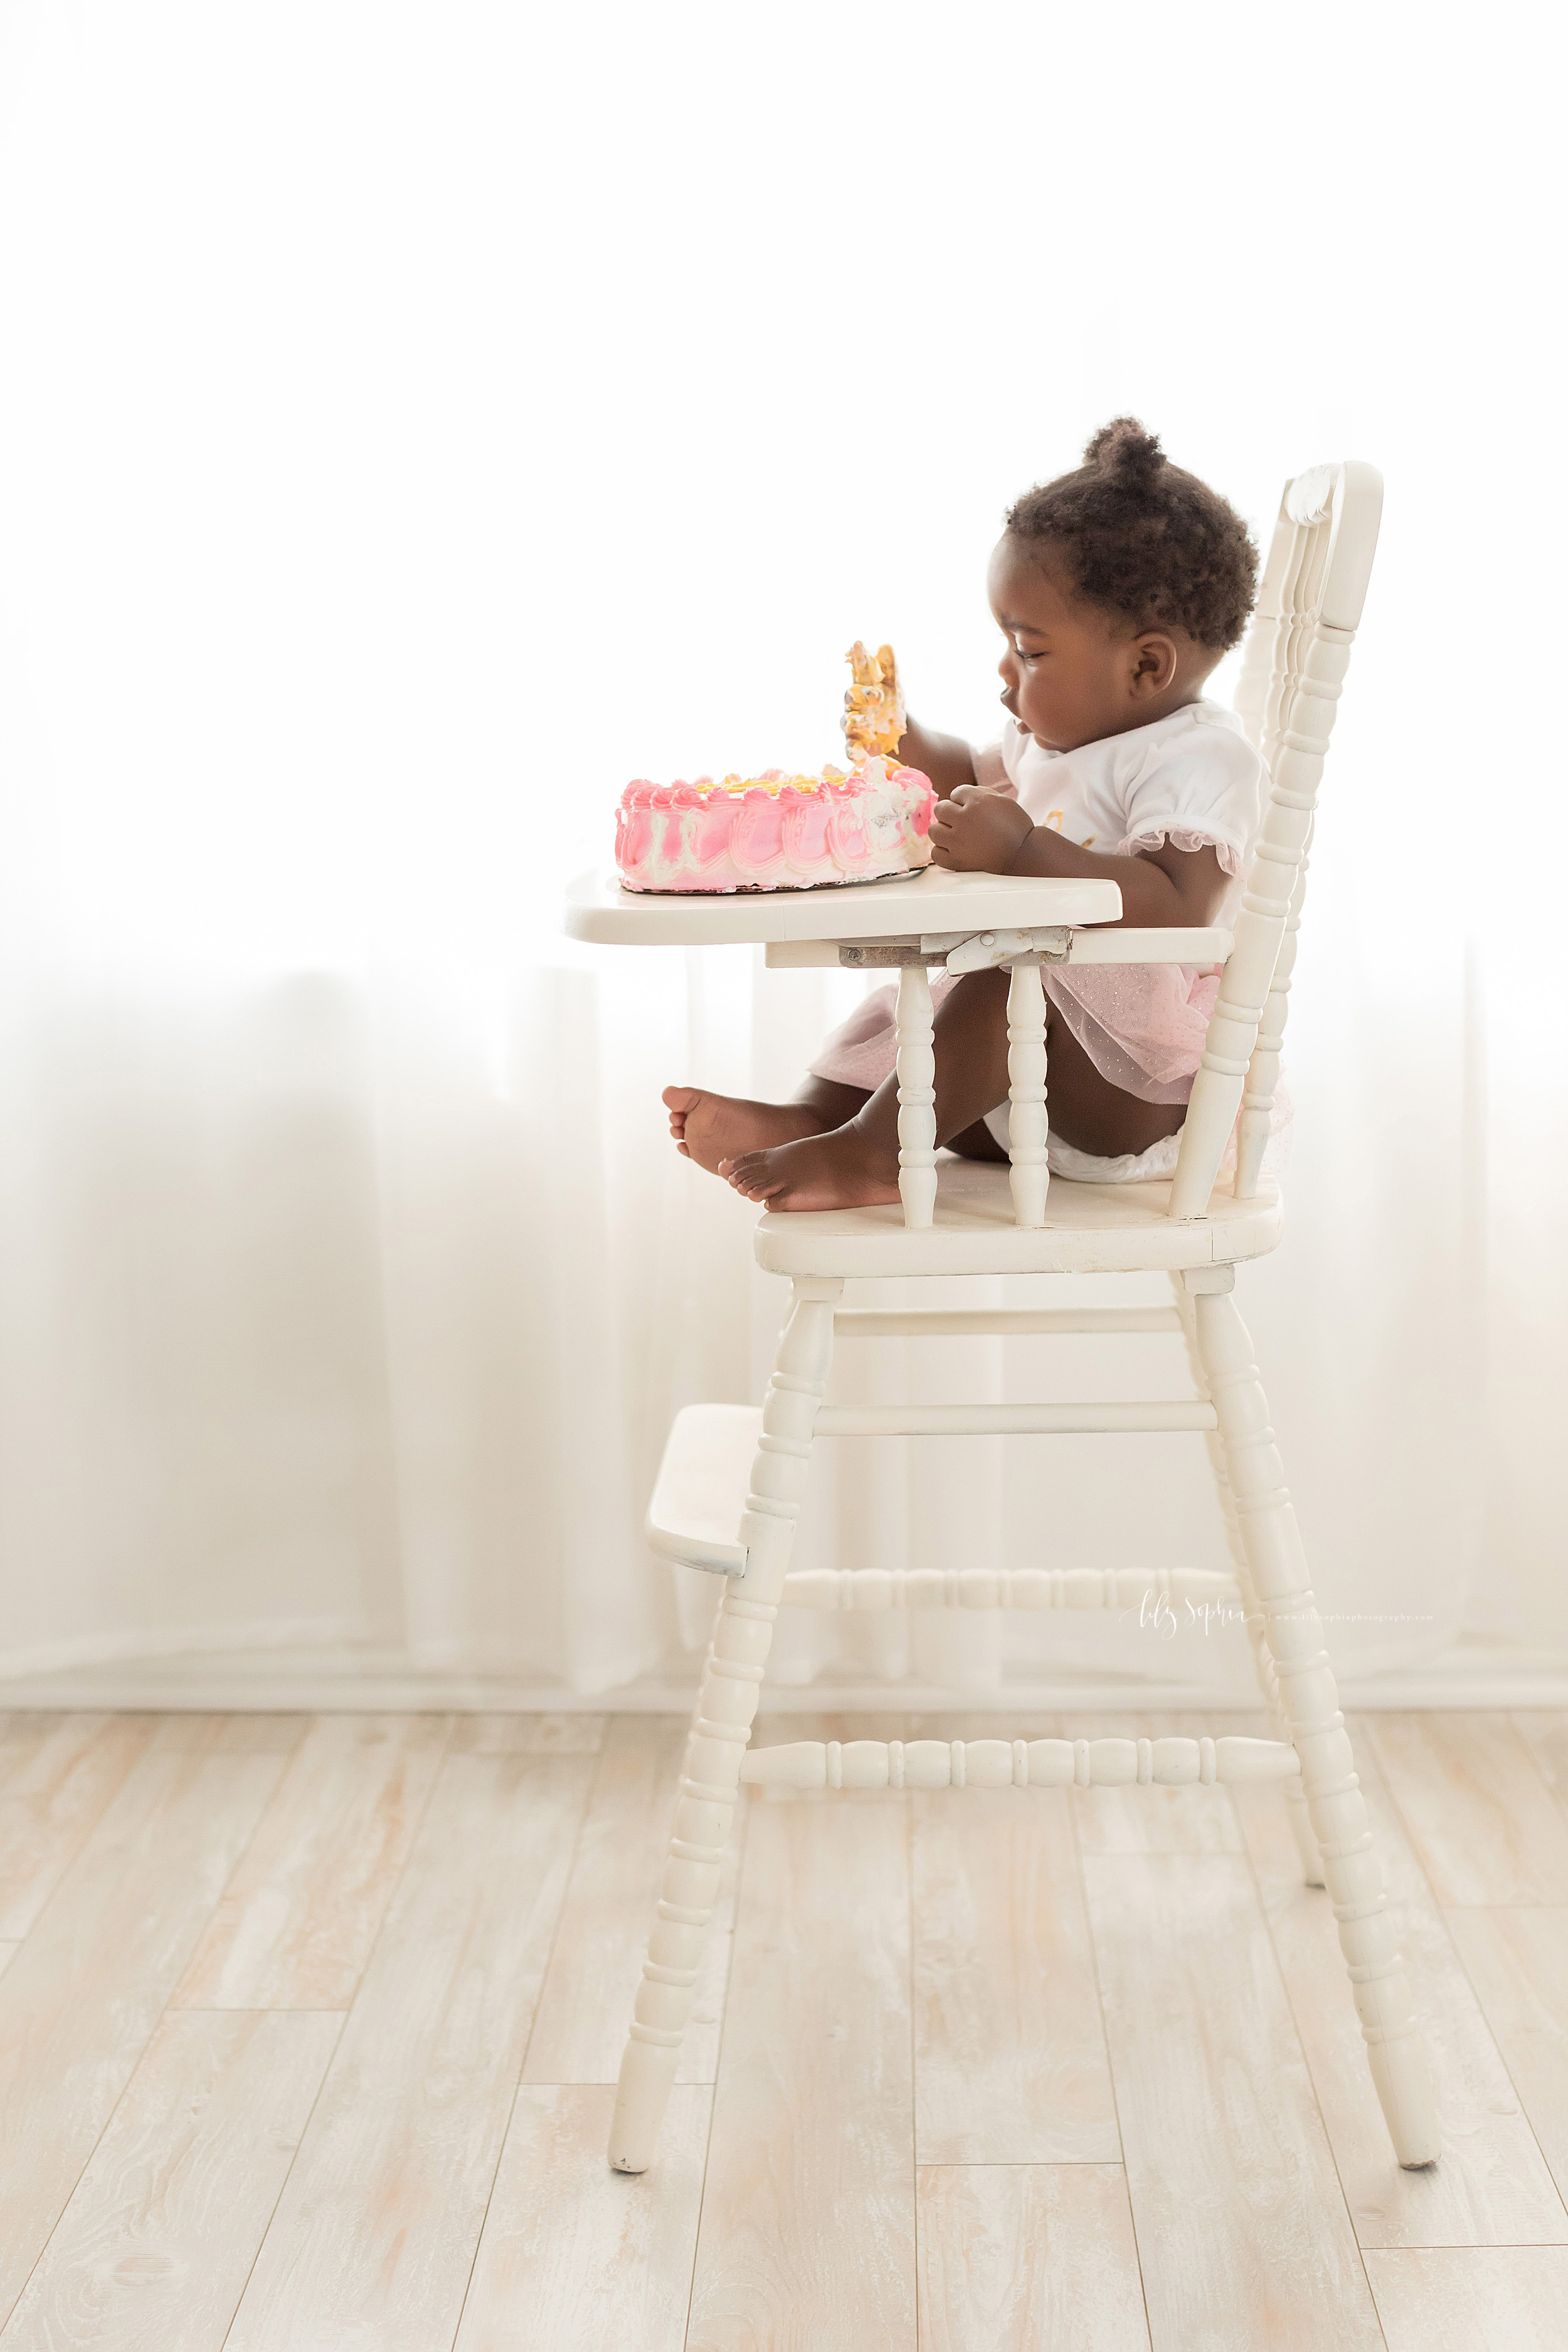 Photo of a cake smash by a one-year old African-American girl in an Atlanta natural light studio.  The little girl is sitting in an antique high chair with a pink, white, and yellow cake on the high chair tray.  She has put her right hand into the icing and is looking at her hand that is covered with yellow icing.